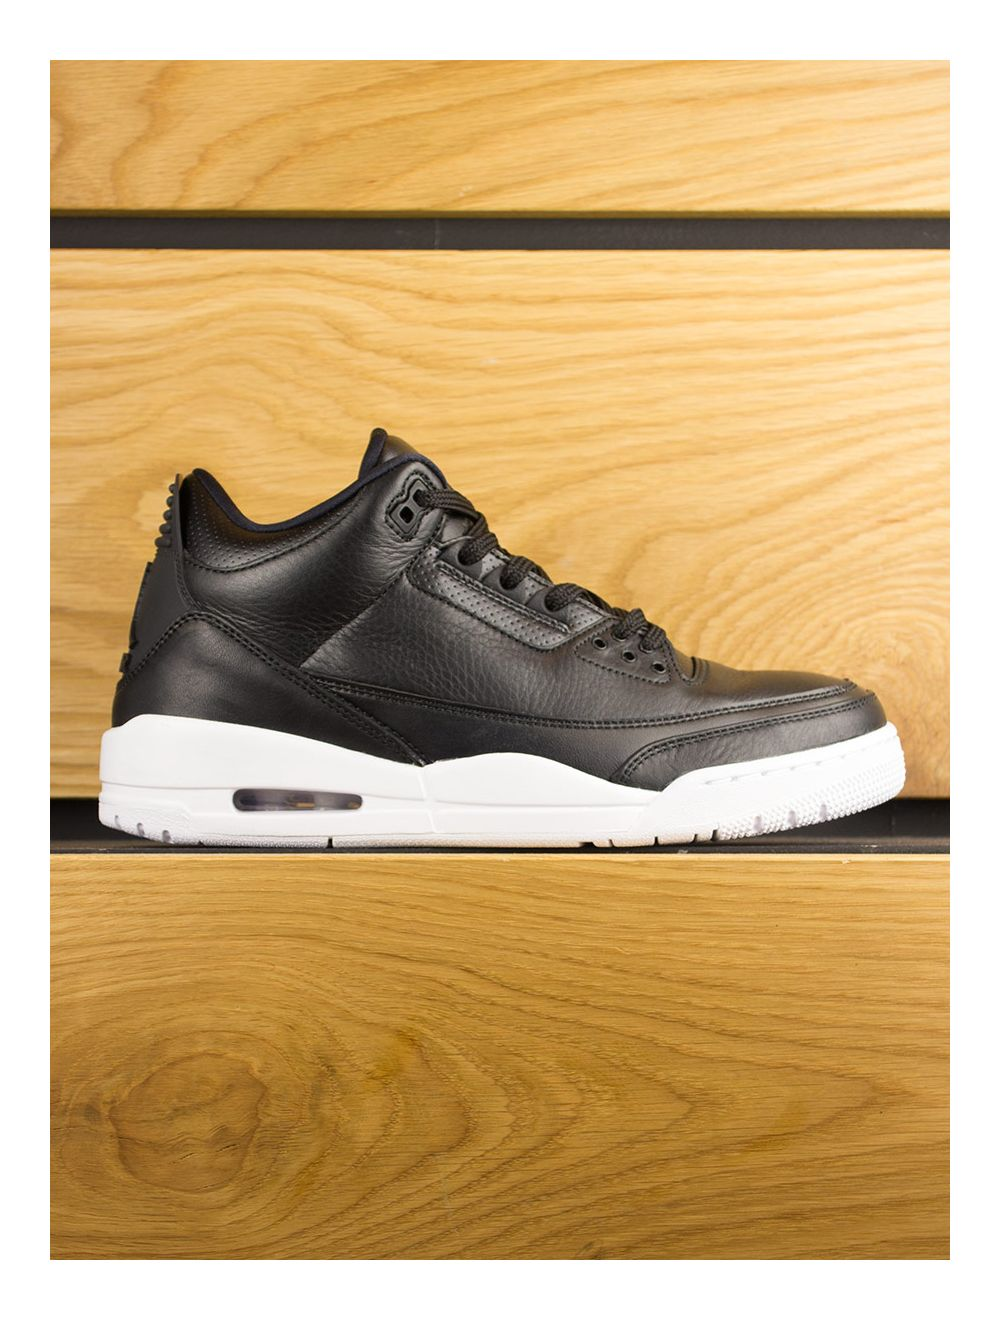 official photos 3e846 8add7 Nike Air Jordan 3 Retro - Cyber Monday